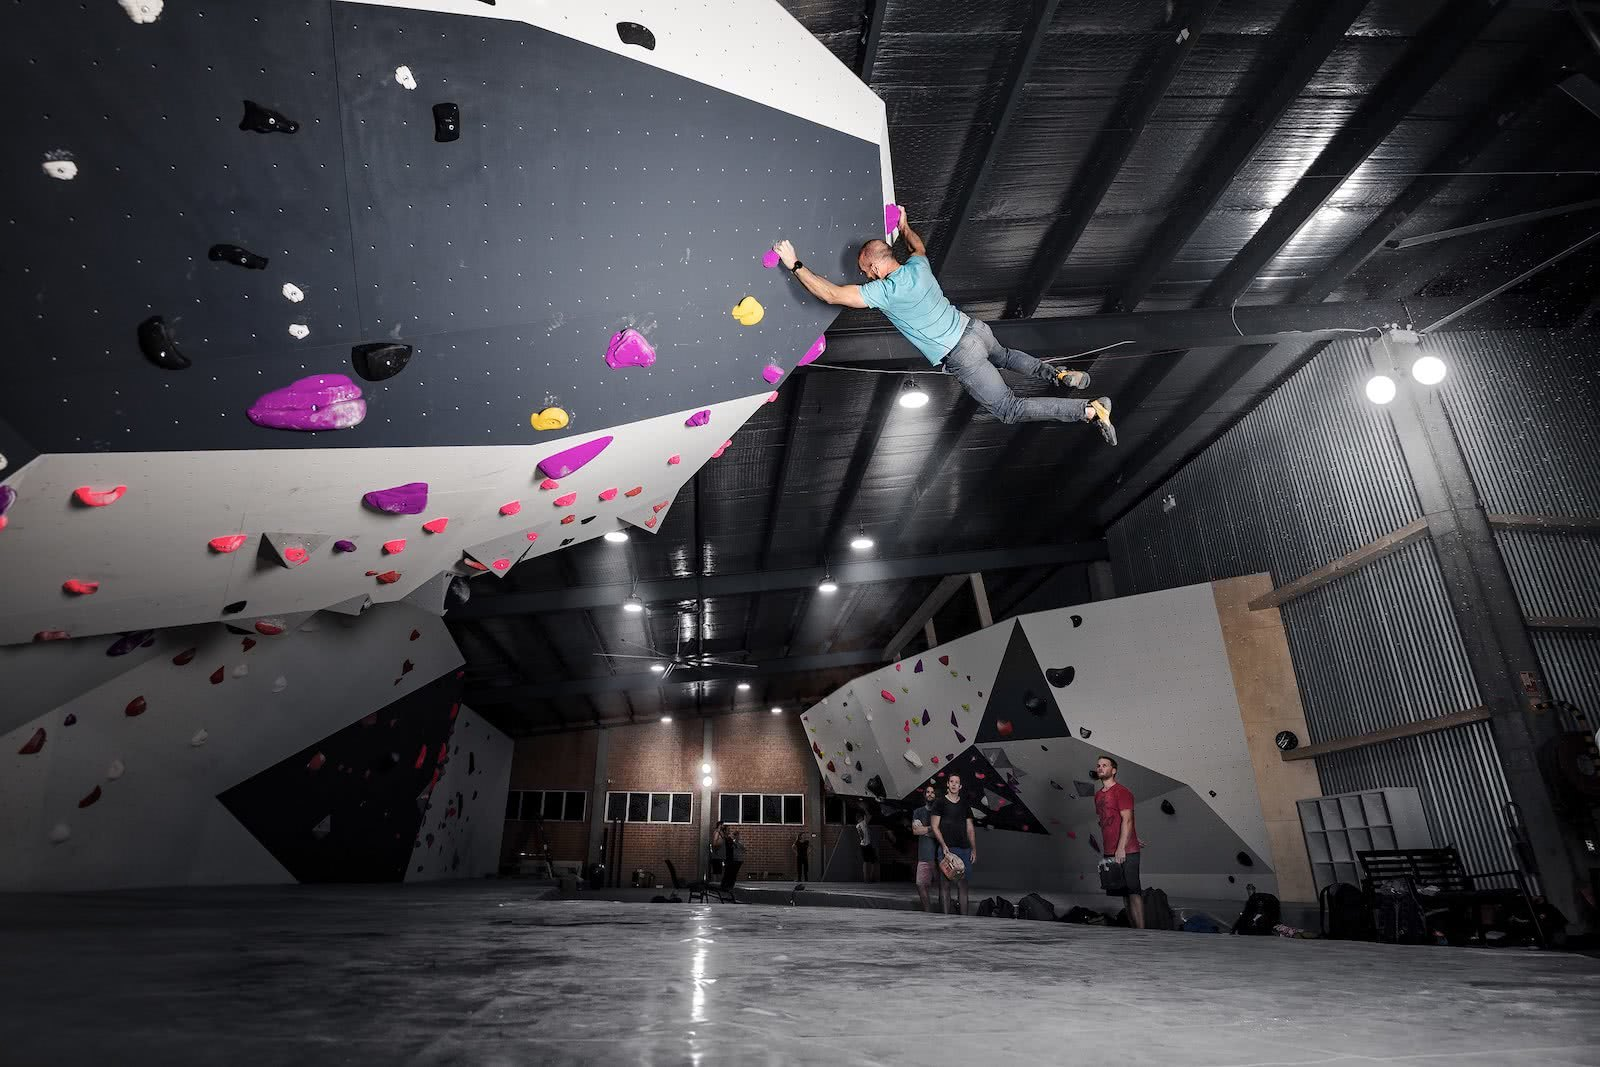 We Checked Out Sydney's Newest Bouldering Gym, Jake Anderson, Rod, Bouldering, 9 Degrees Lane cove